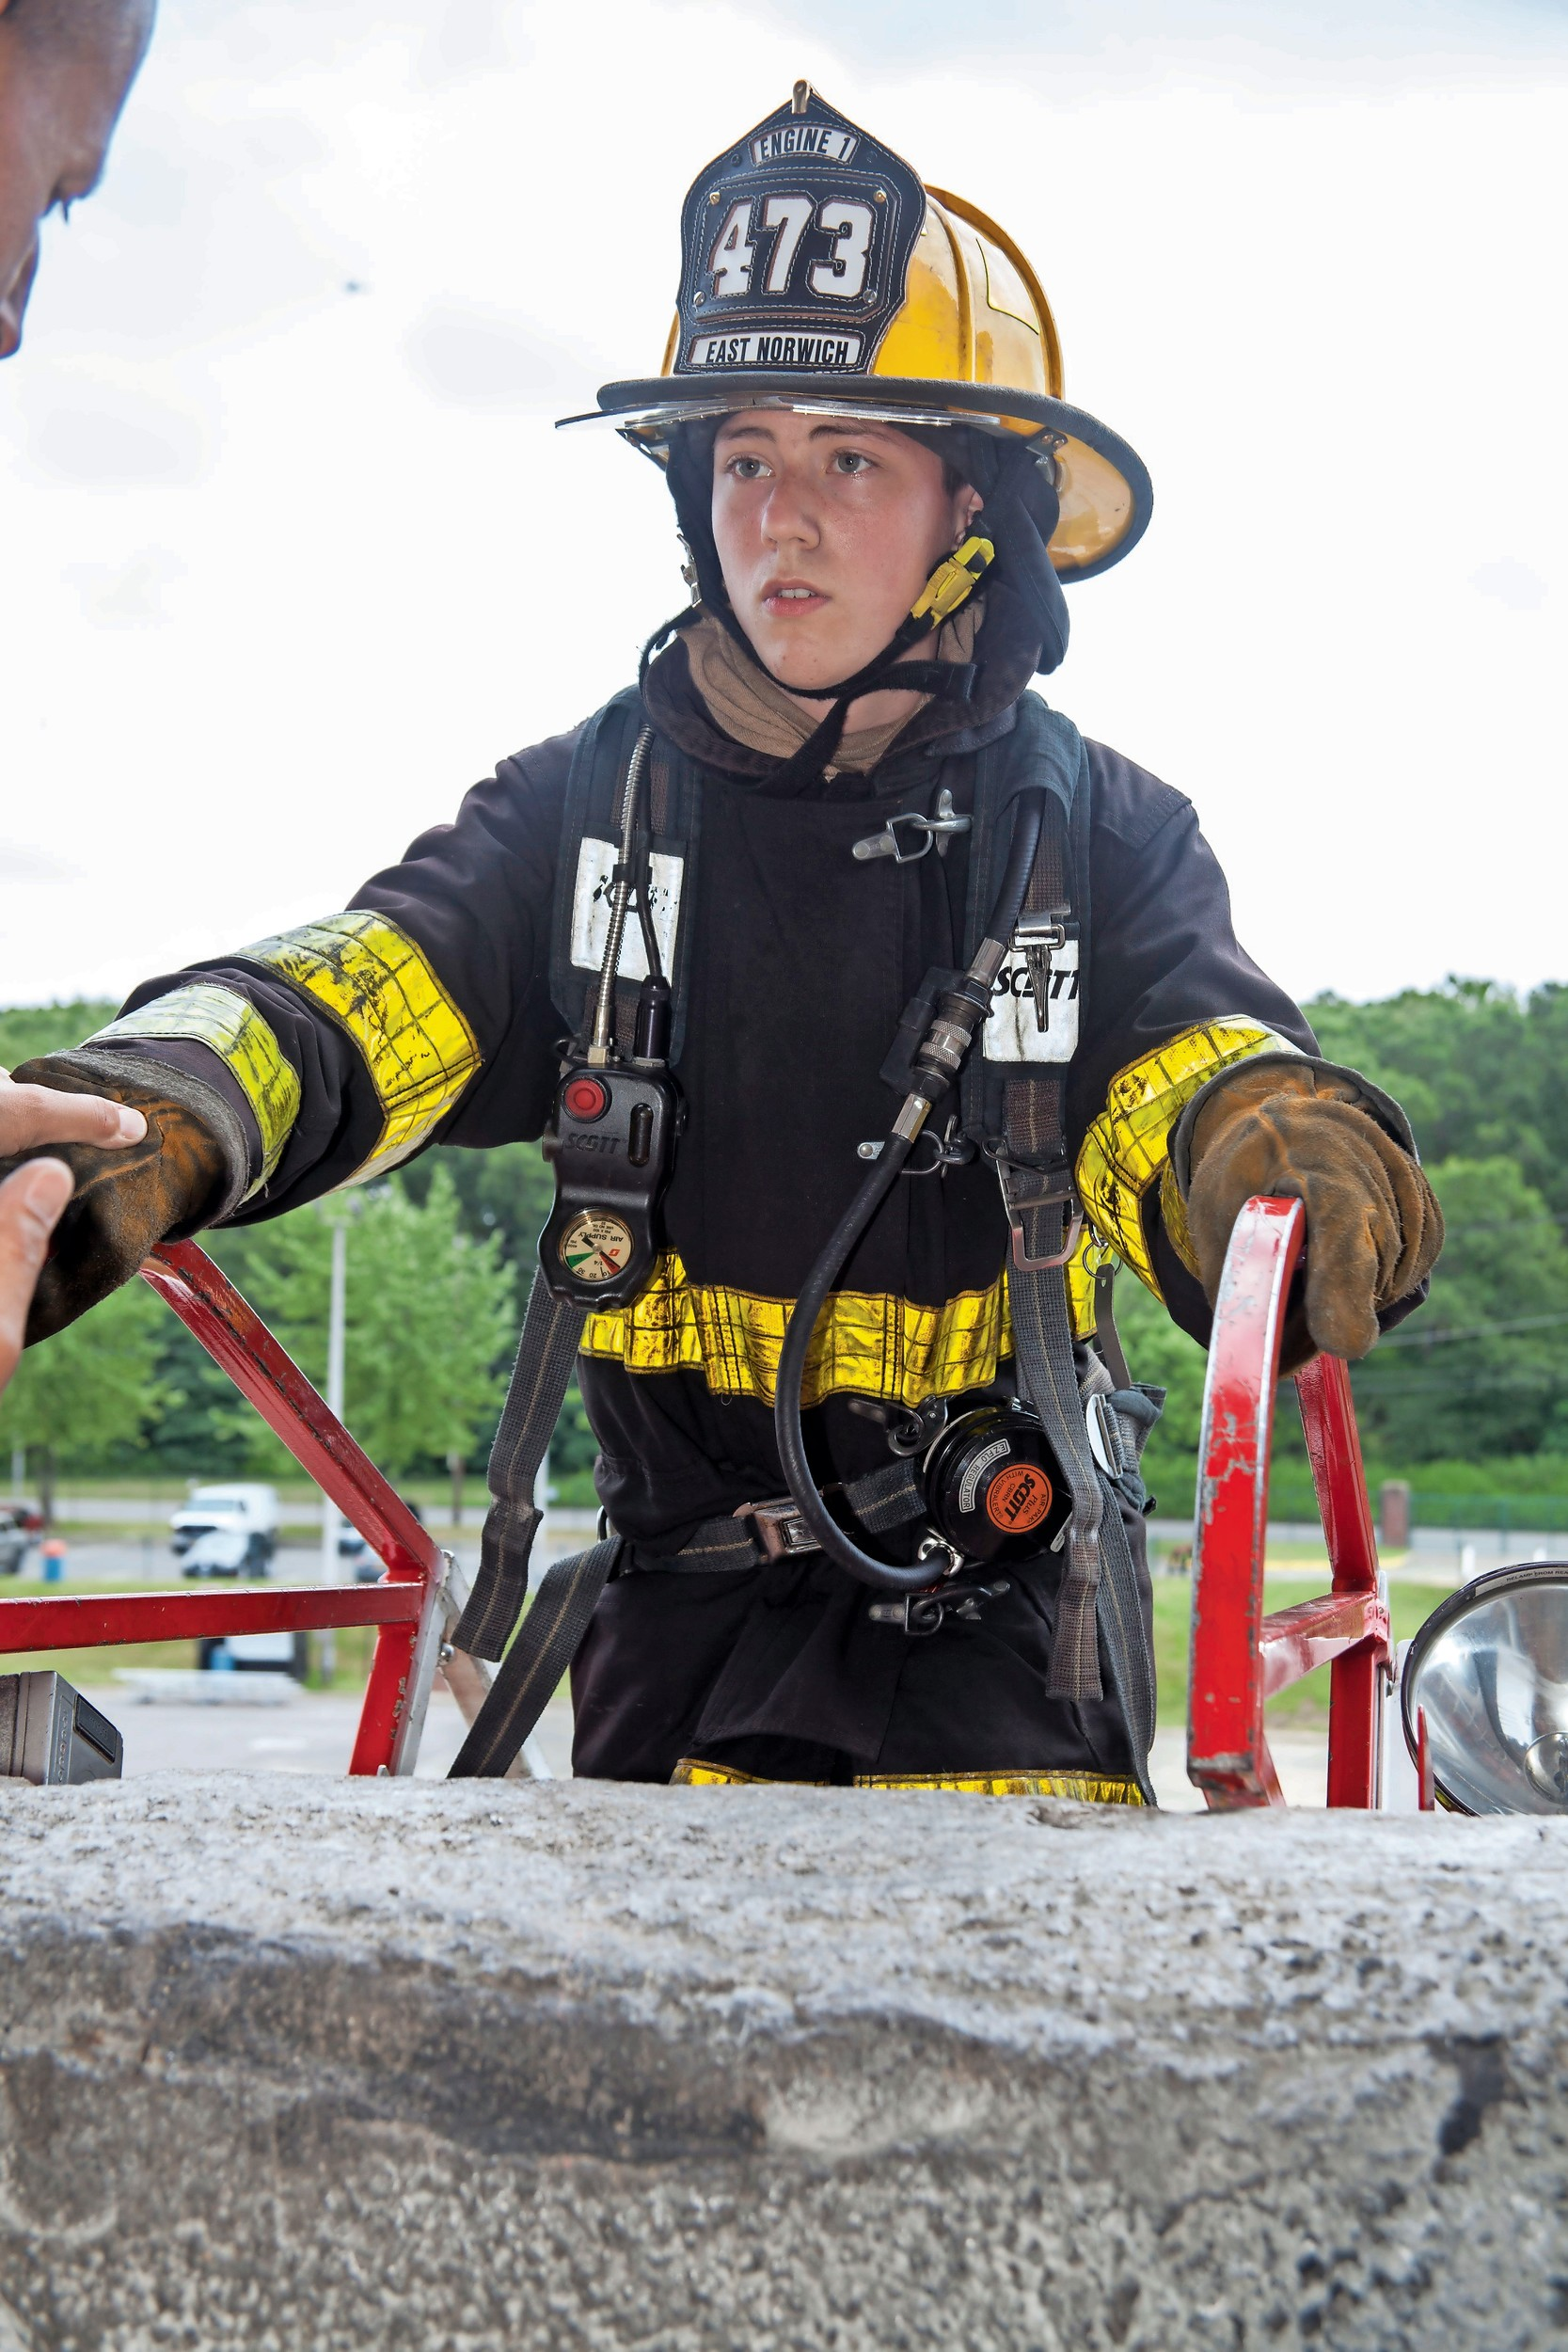 Photo by Ryan Hedland